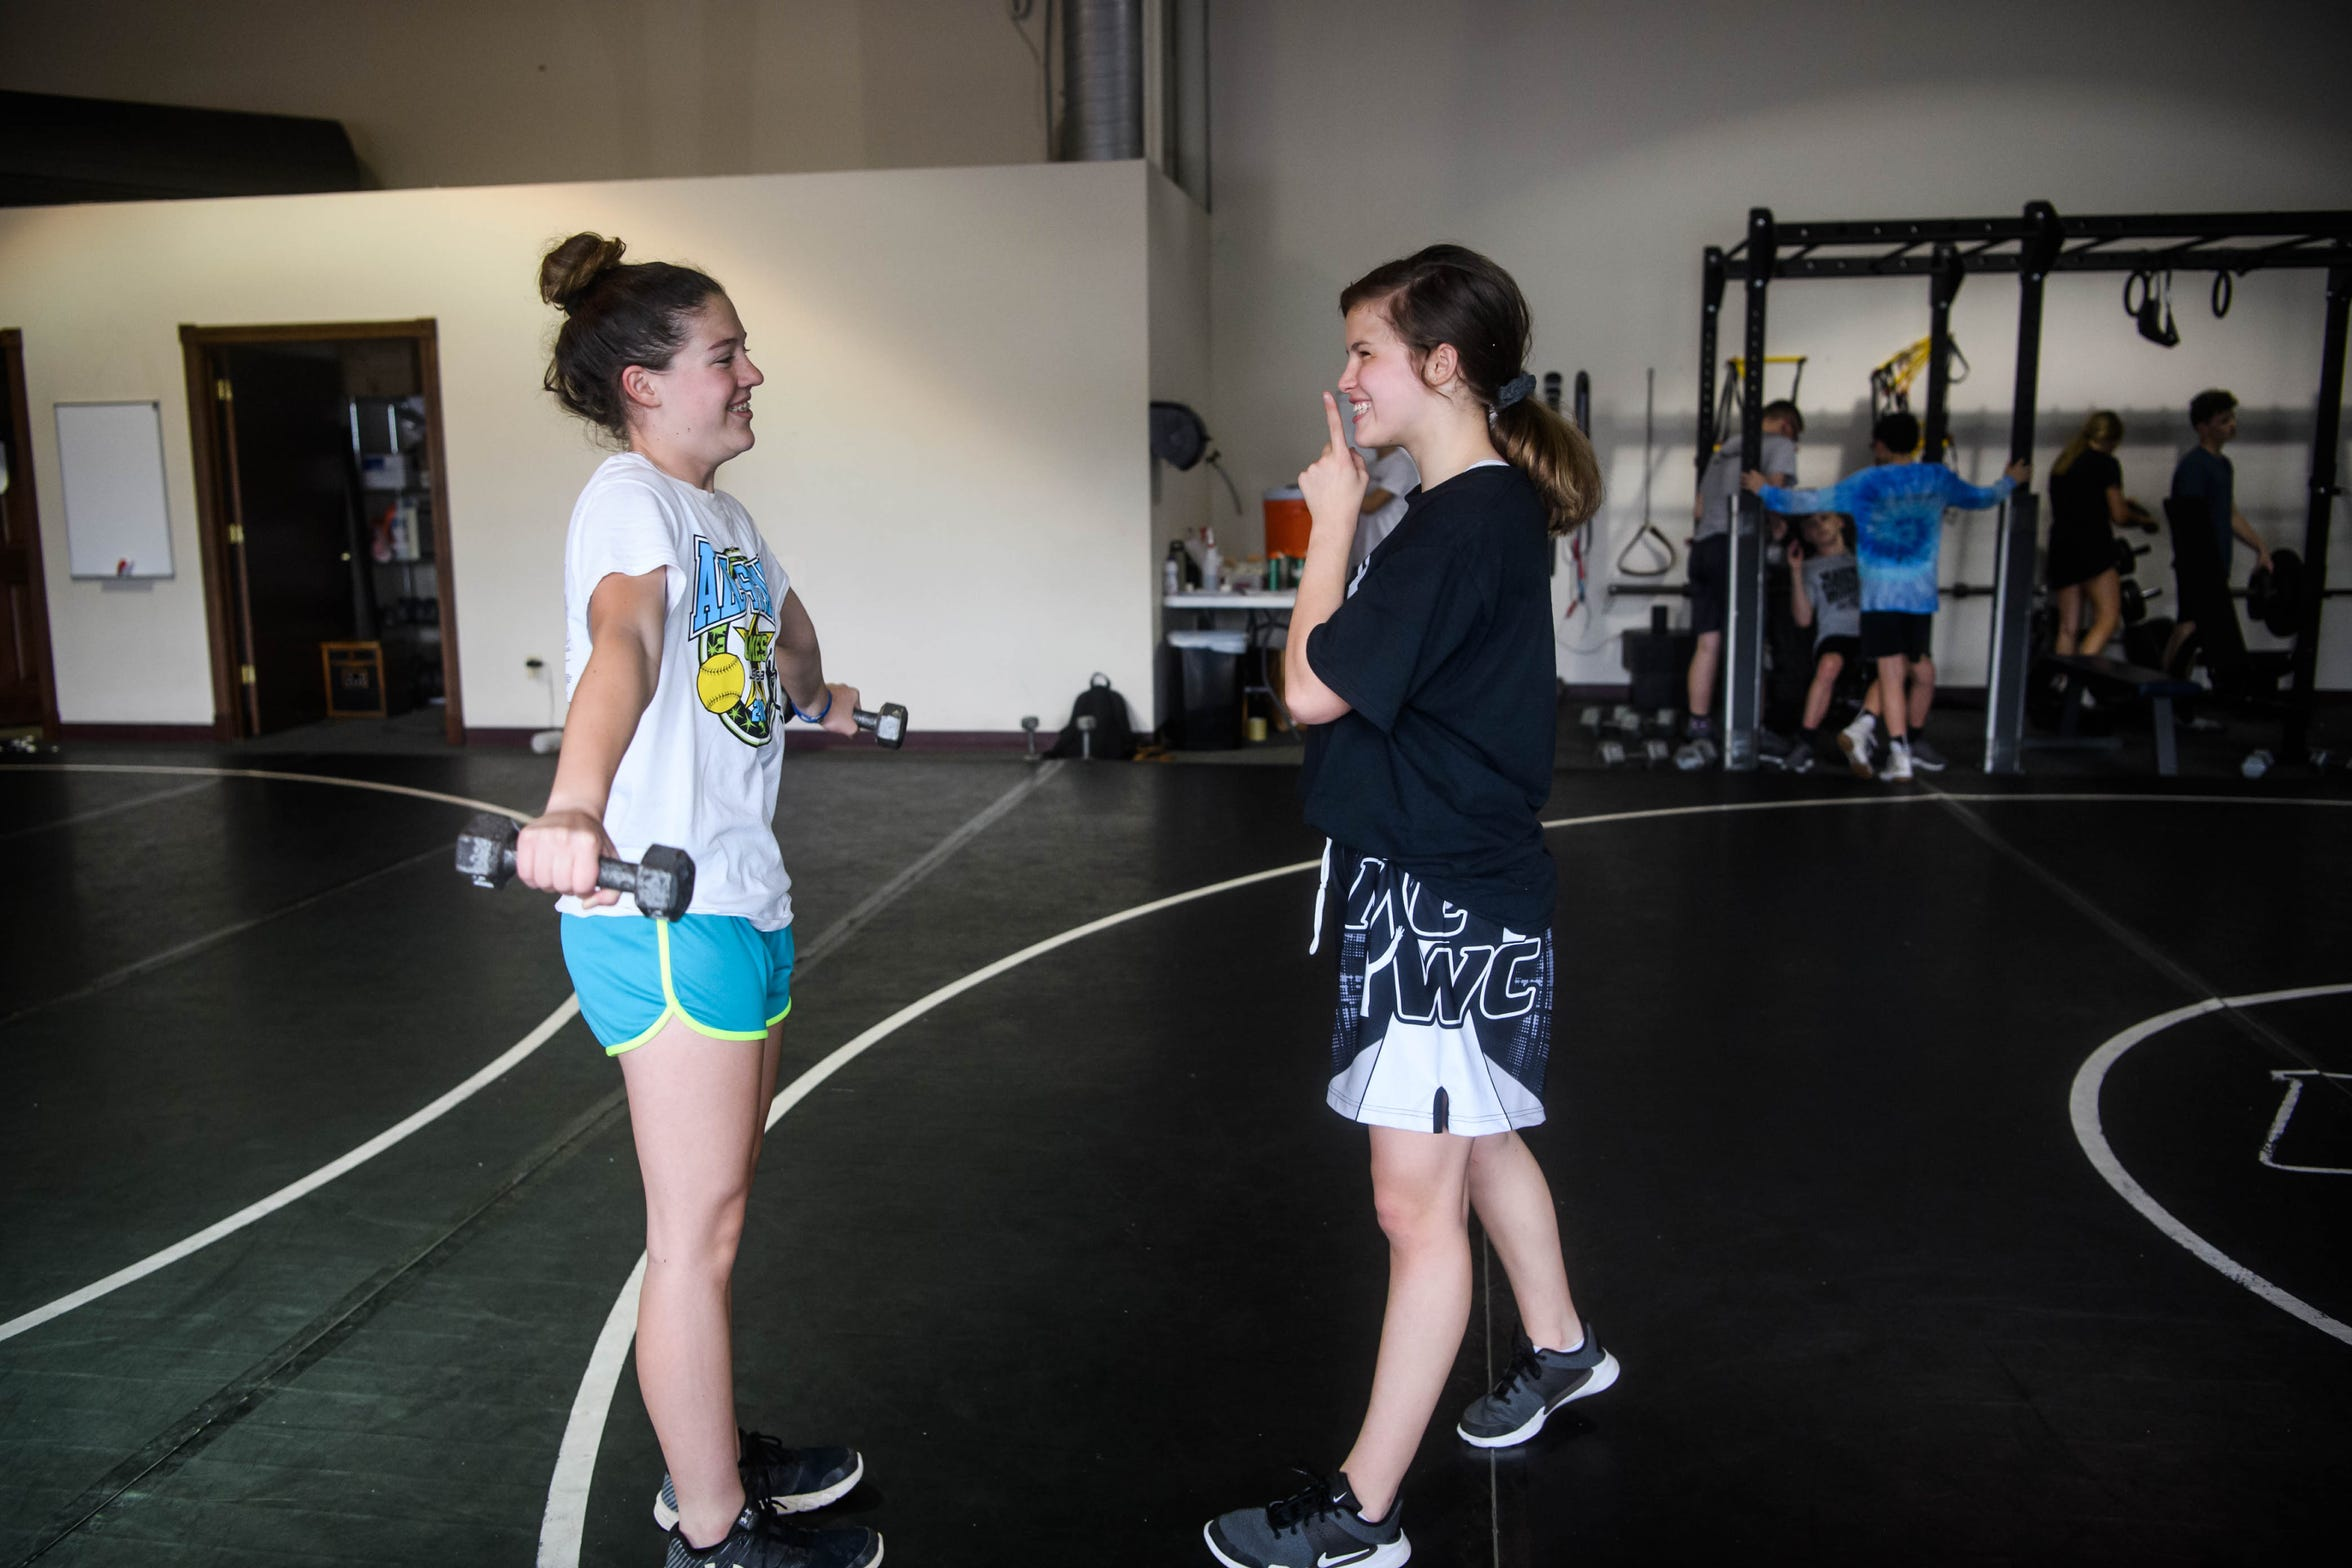 Kaylie jokingly shushes her friend Jacie Arnold, left, as they tease each other during a weightlifting session at Maurer Coughlin Wrestling Club in Evansville, Ind., Thursday, May 2, 2019. Arnold is a softball player who started weightlifting alongside Kaylie and other wrestlers to stay in shape.